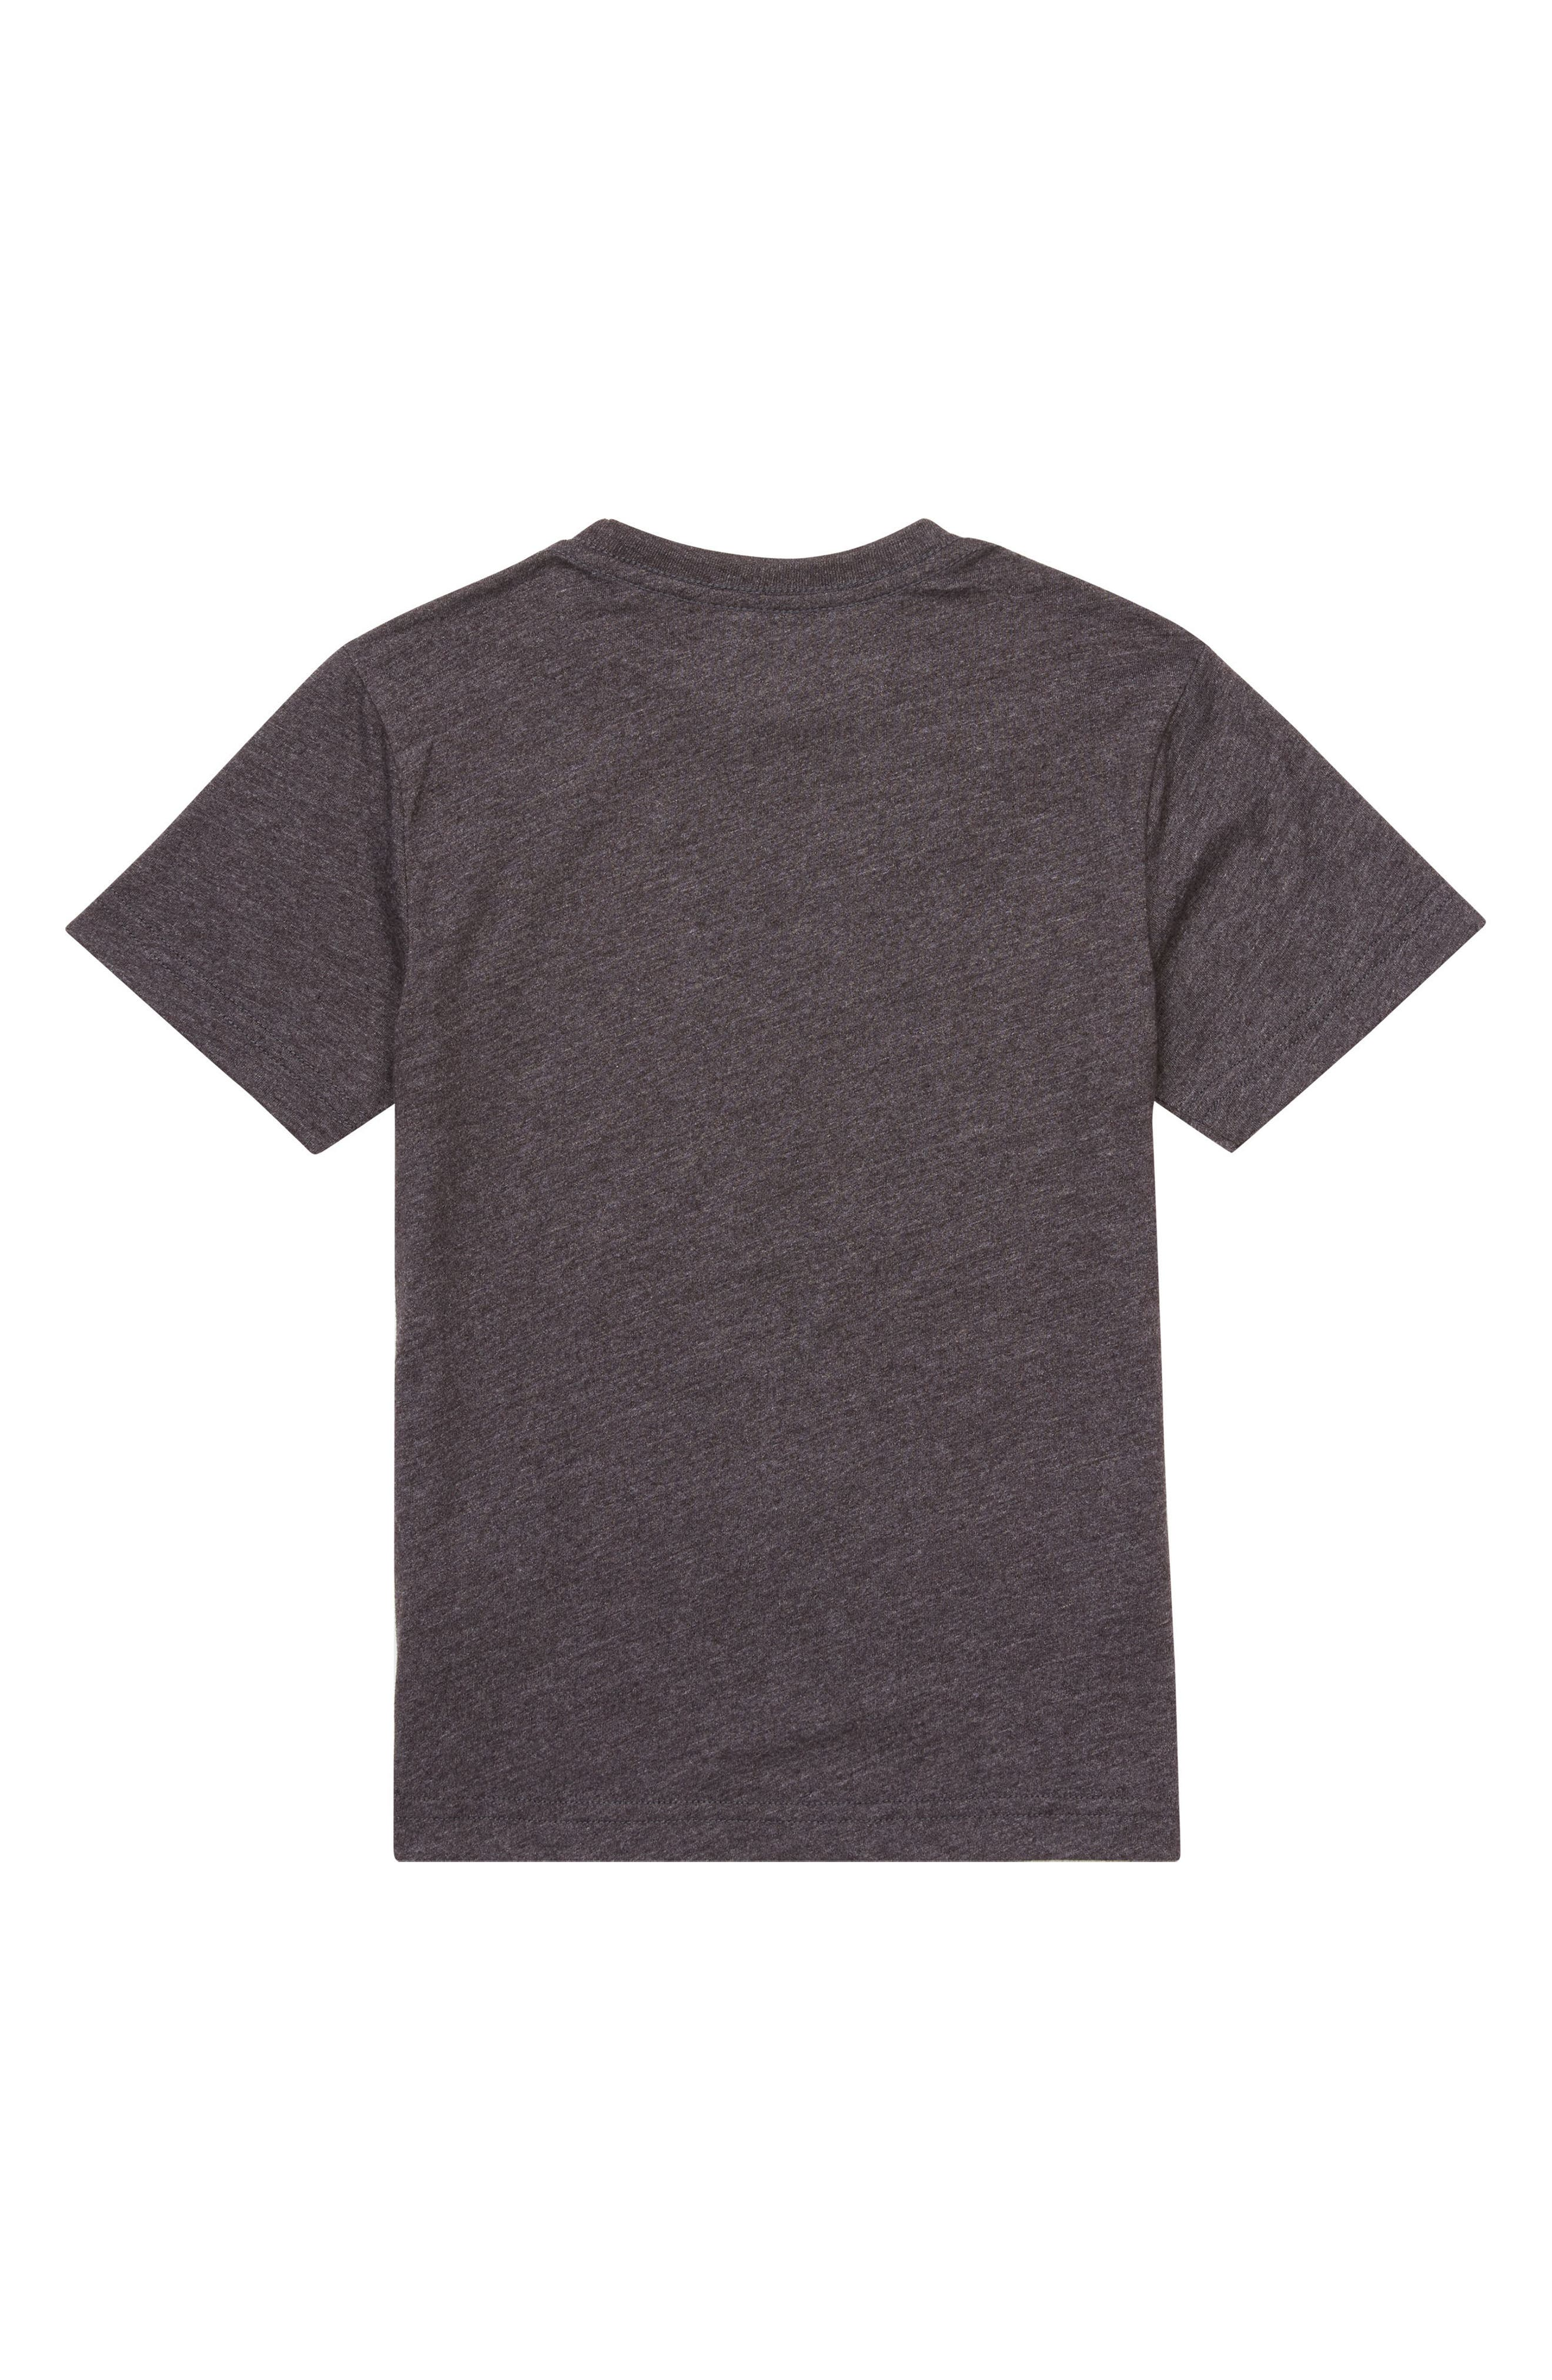 Maag Graphic T-Shirt,                             Alternate thumbnail 3, color,